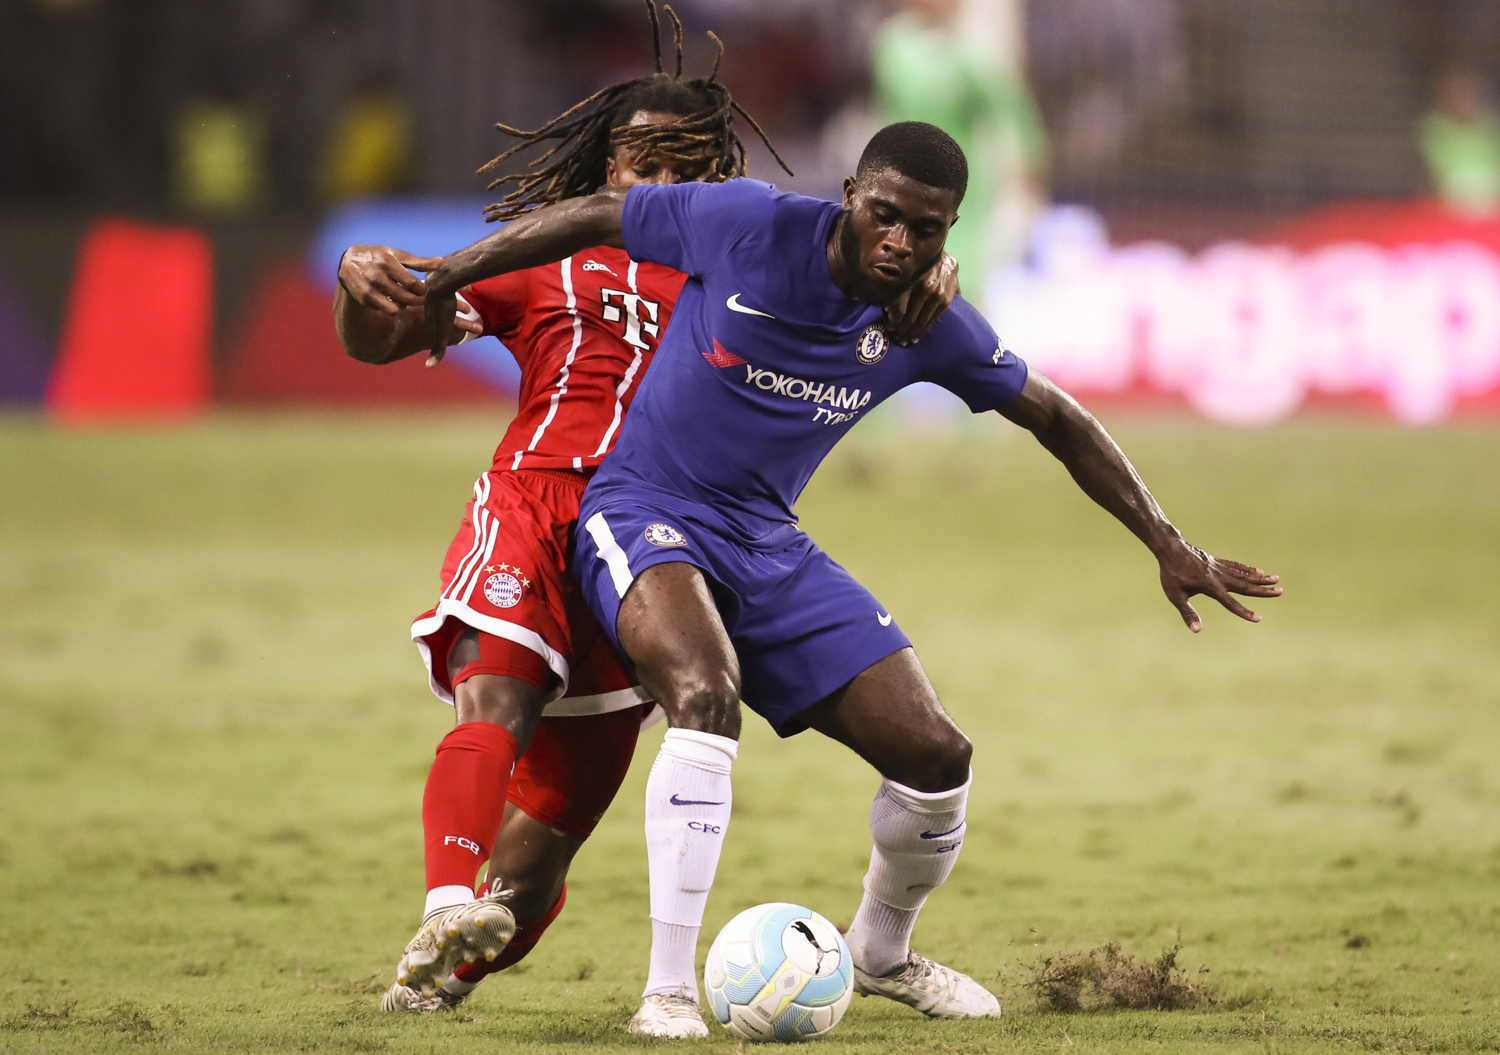 Soccer Football - Chelsea vs Bayern Munich - International Champions Cup - Singapore - July 25, 2017 Chelsea's Jeremie Boga in action against Bayern Munich's Renato Sanches REUTERS/Yong Teck Lim